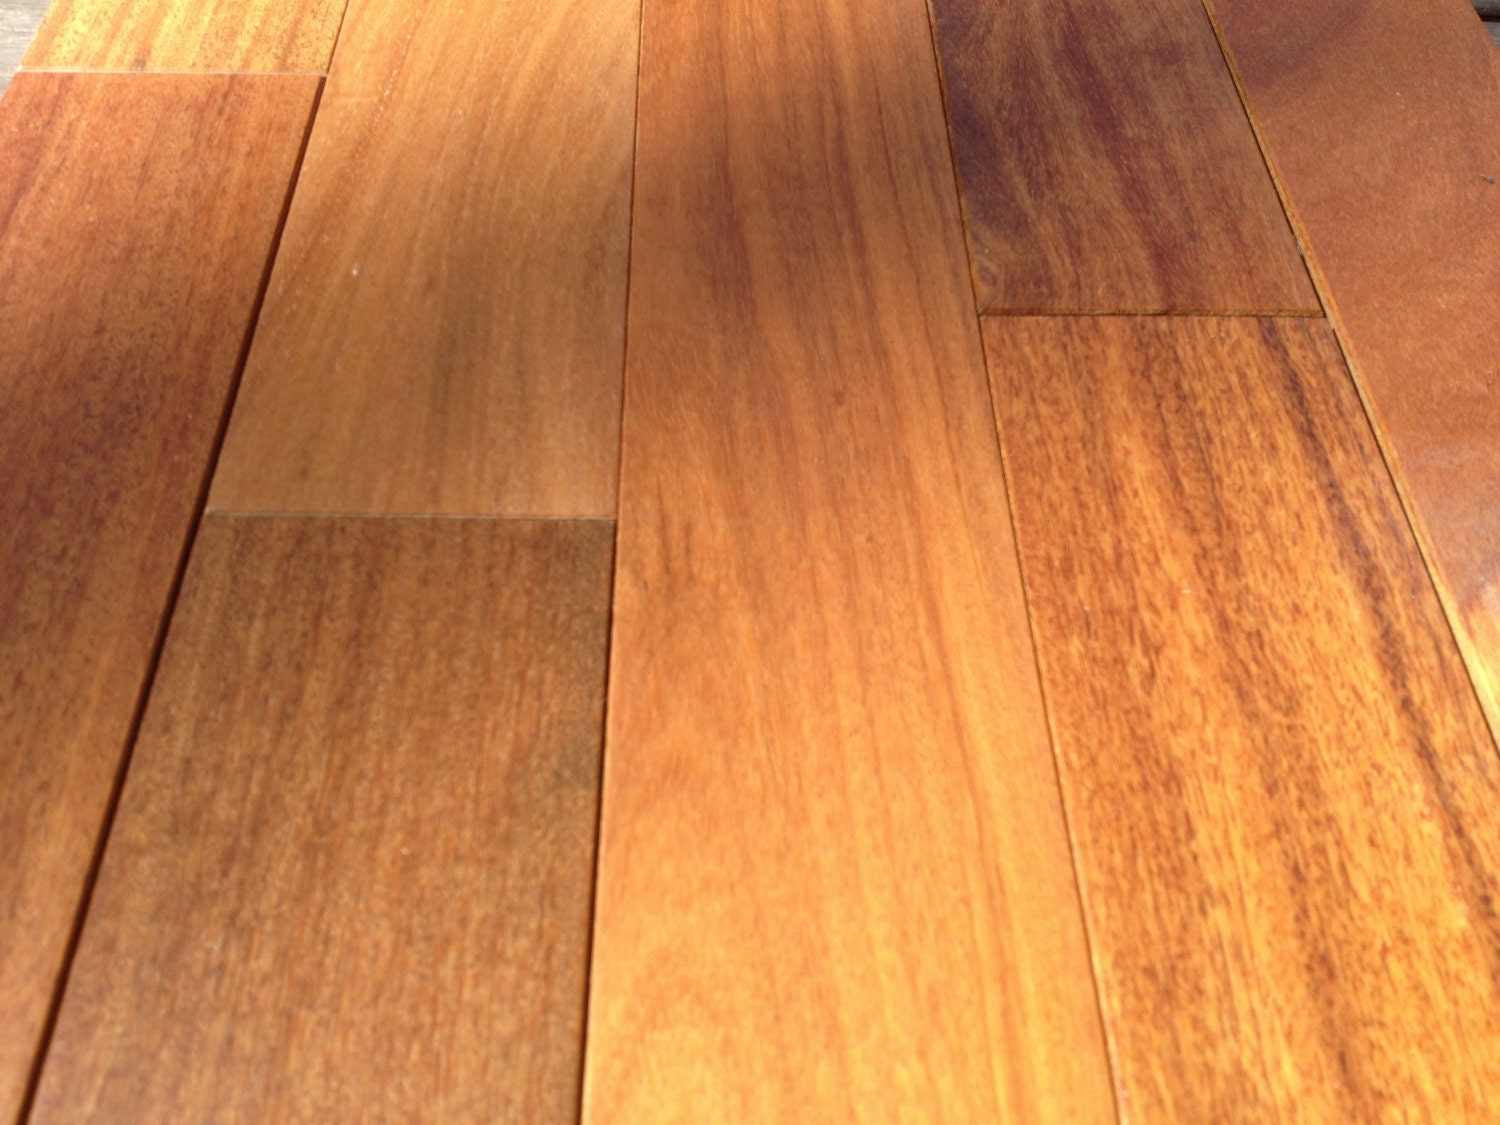 Brazilian teak cumaru hardwood flooring unfinished for Unfinished hardwood floors